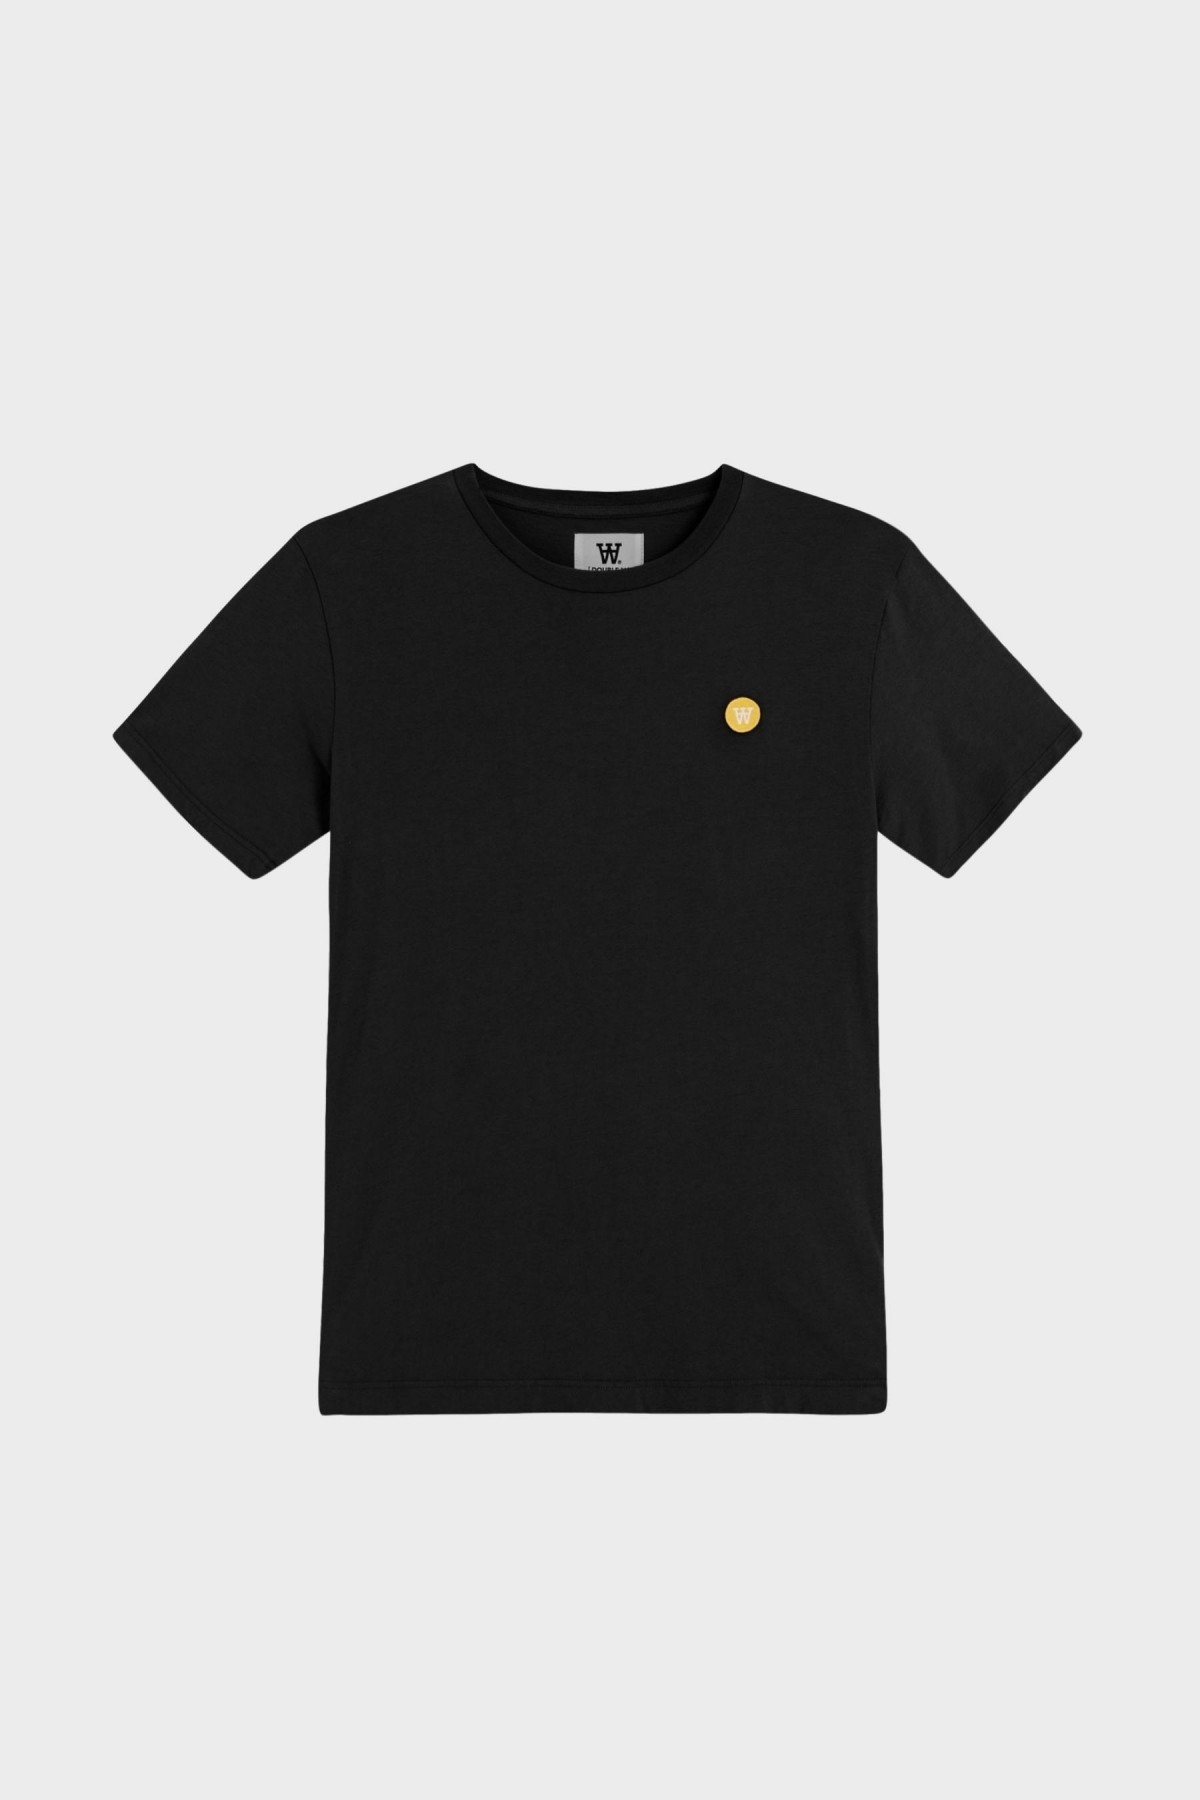 Wood Wood Ace T-Shirt in Black